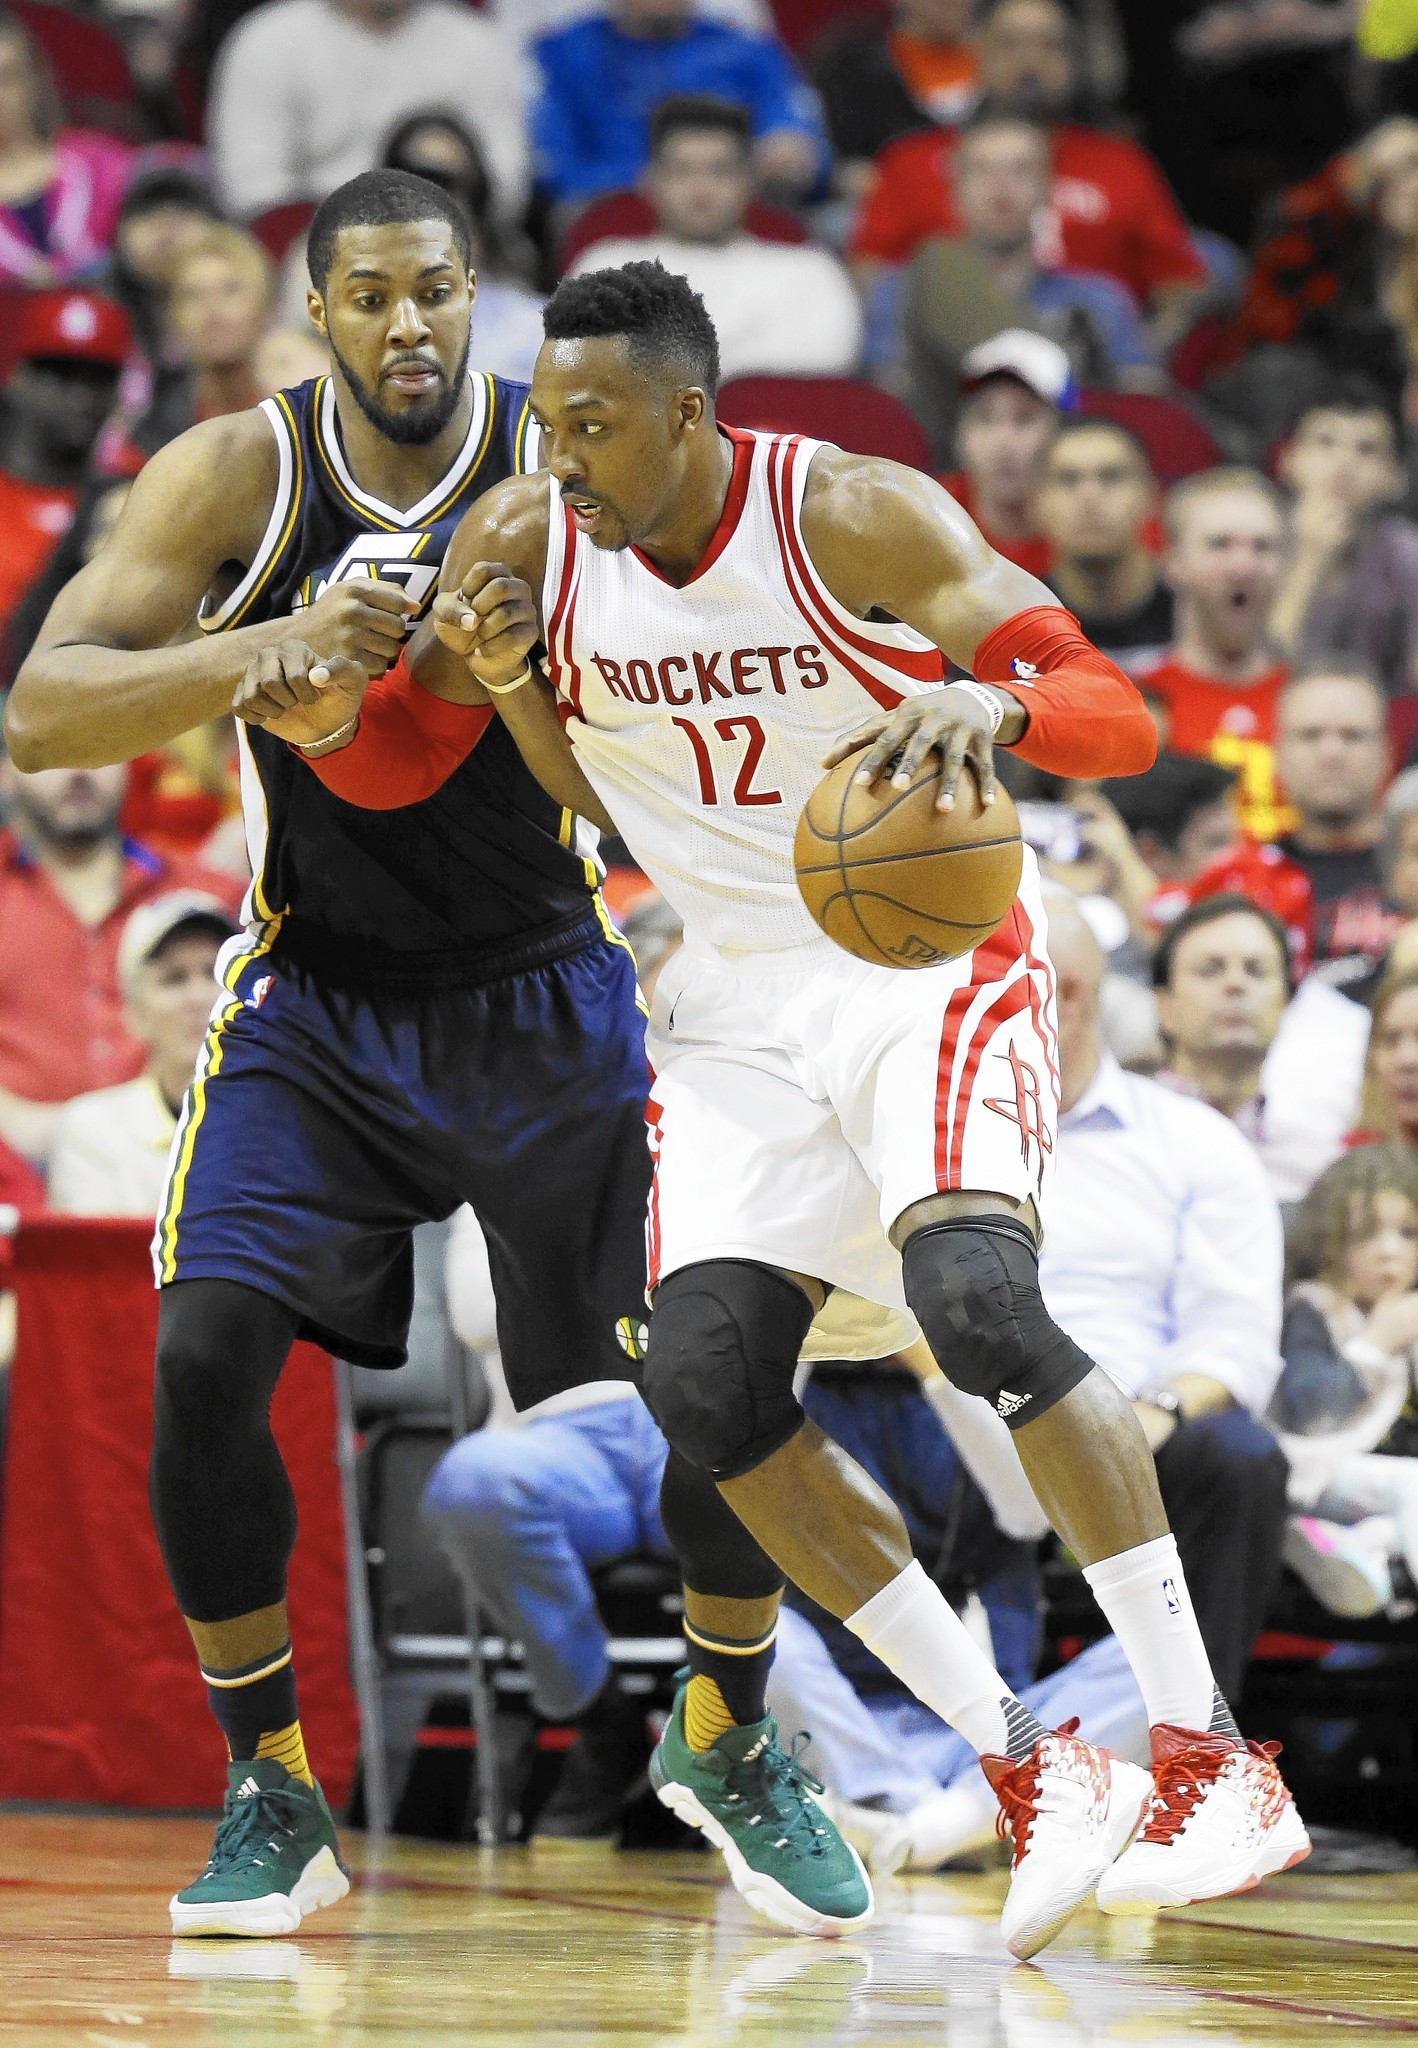 Memo to Orlando Magic  Bring Dwight Howard back home - Orlando Sentinel 0492c51c4